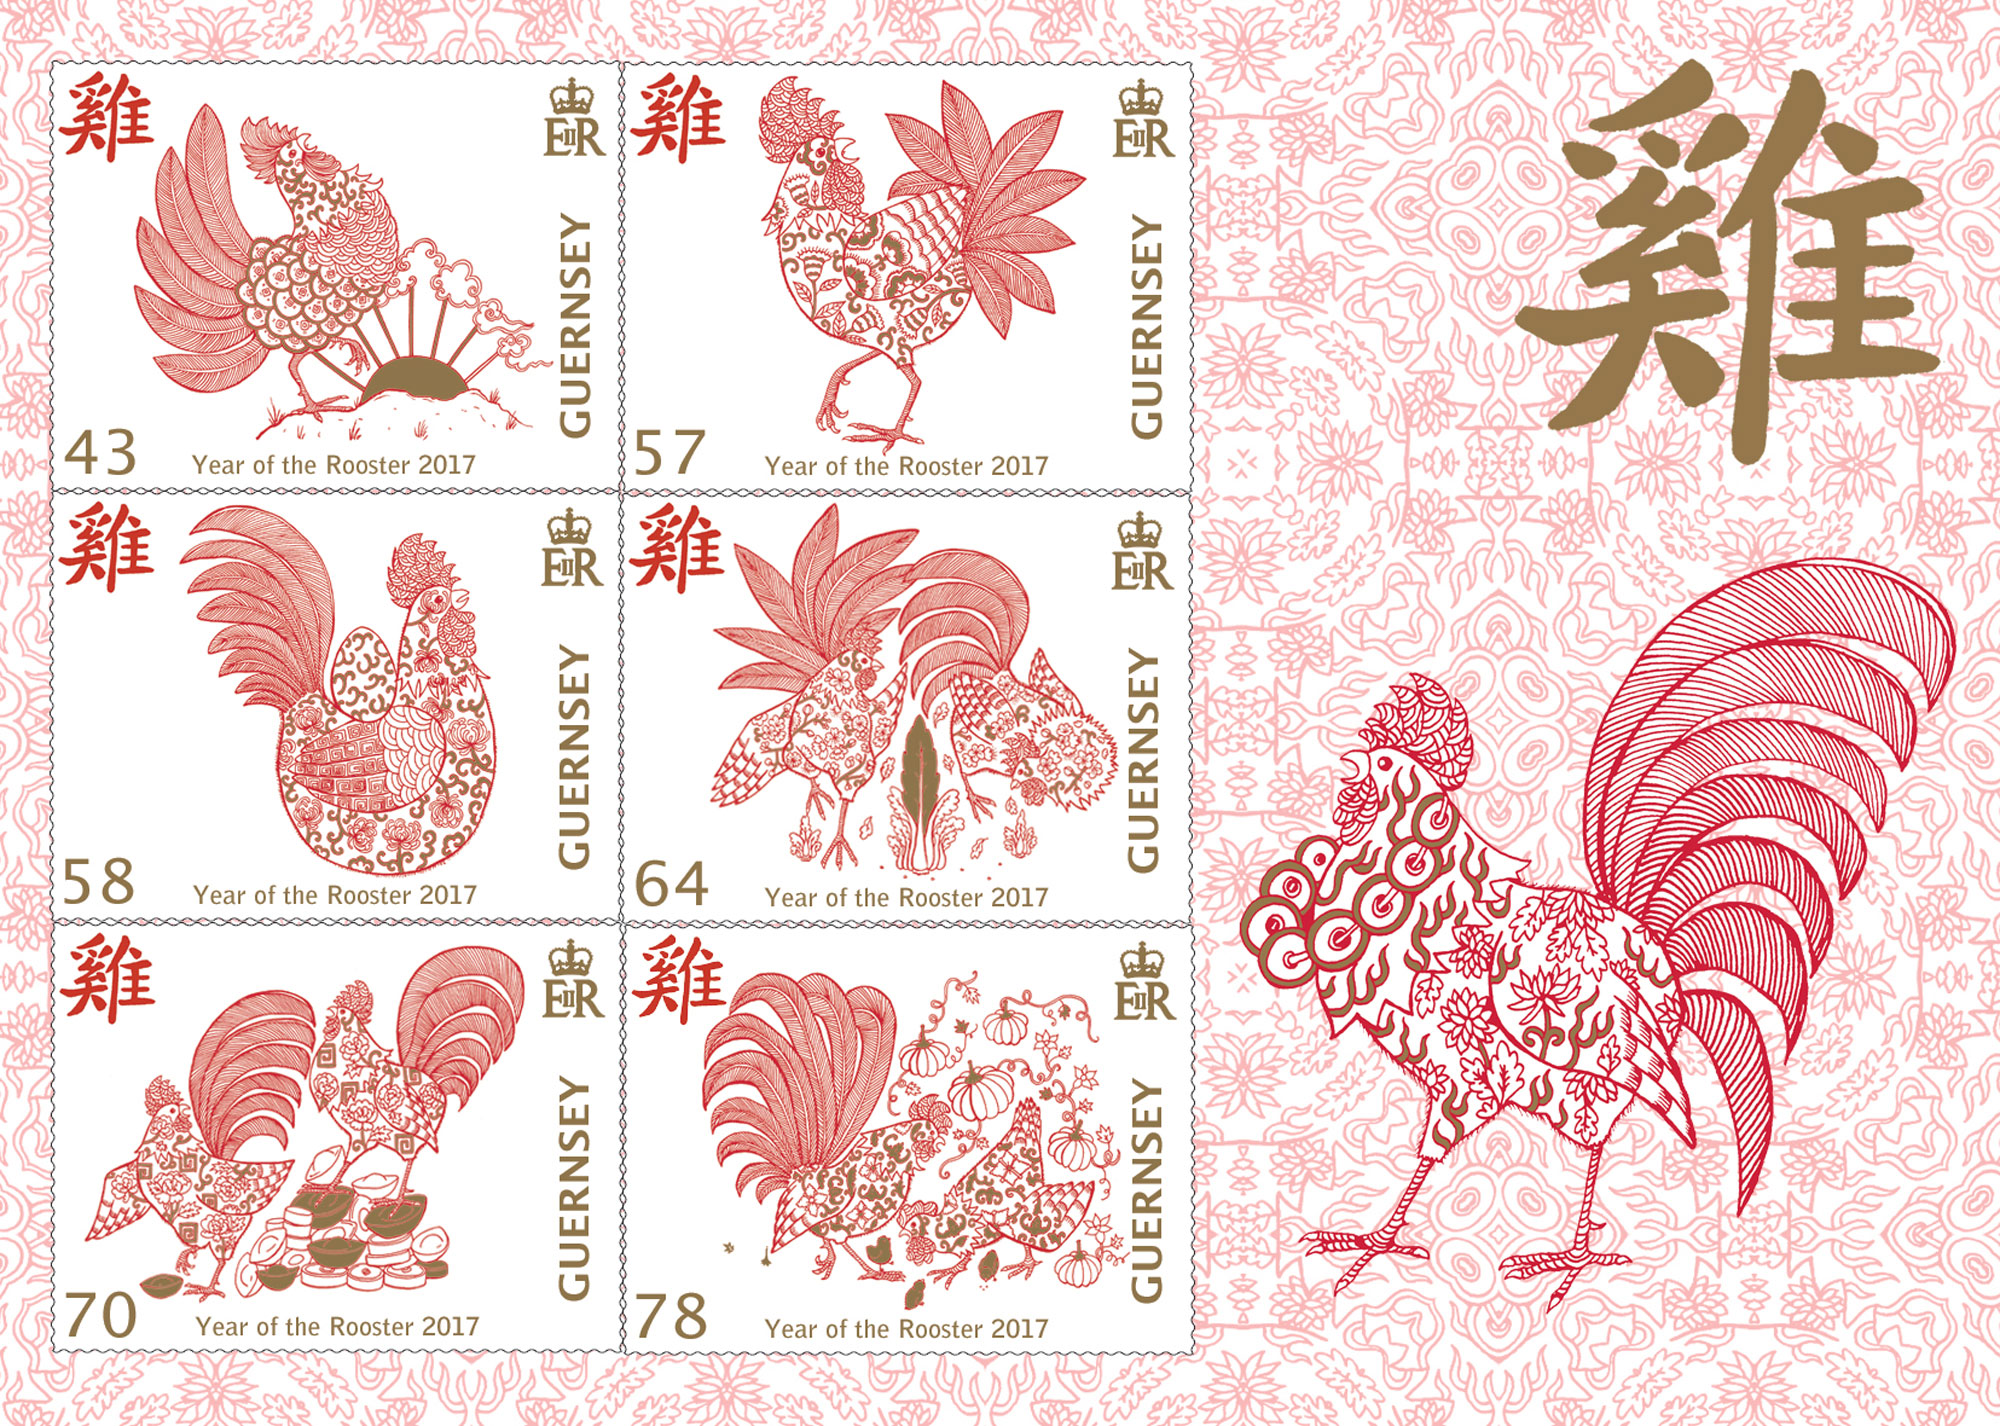 Guernsey Post celebrates Chinese New Year with fourth stamp issue